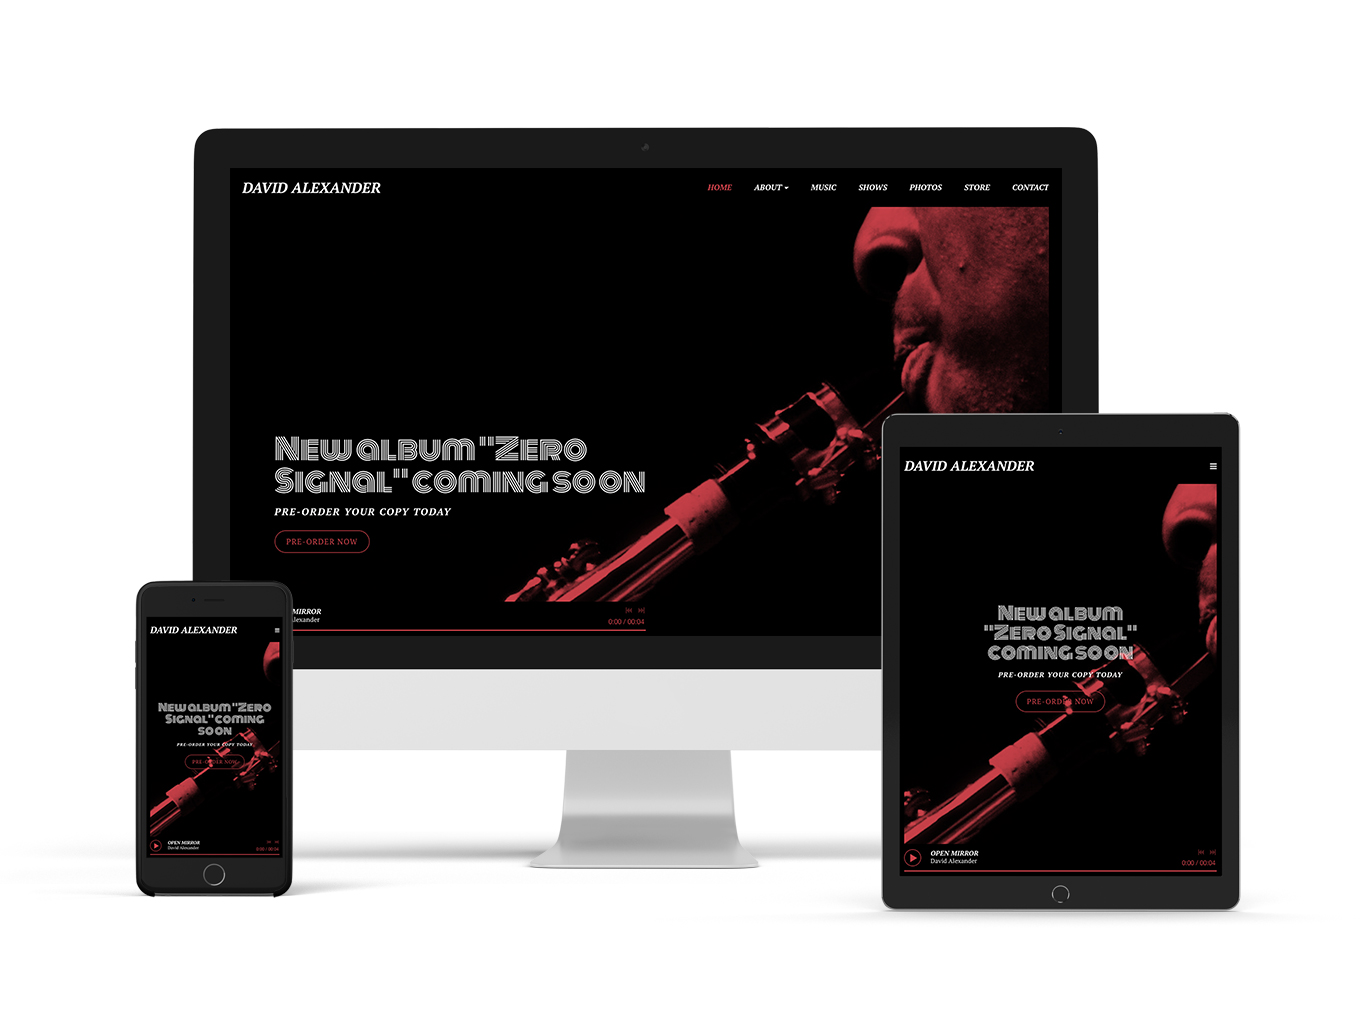 New website theme: Anthem - Sombre variation